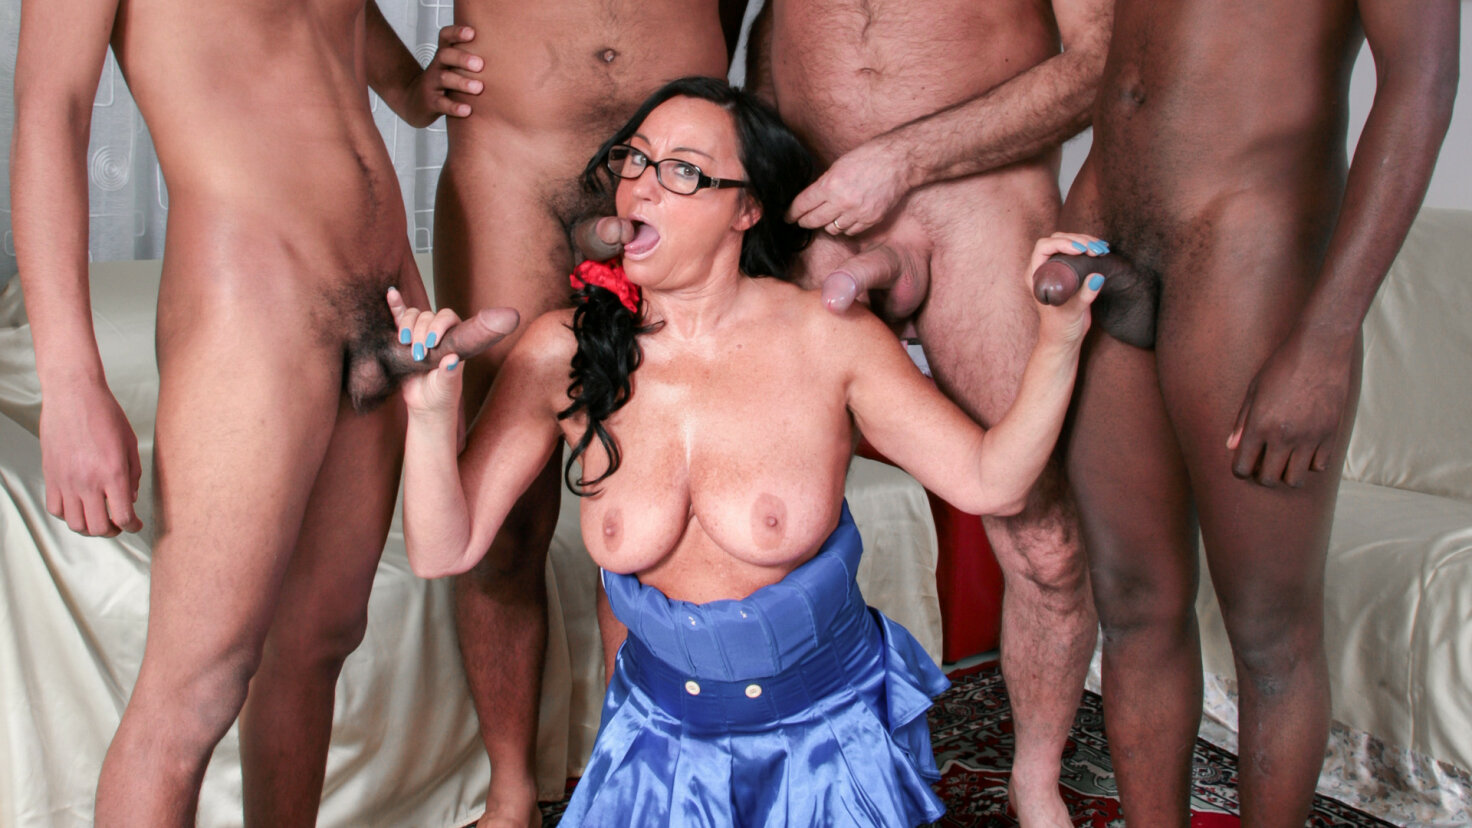 Slutty mature Italian gets gangbanged and cum covered by four guys